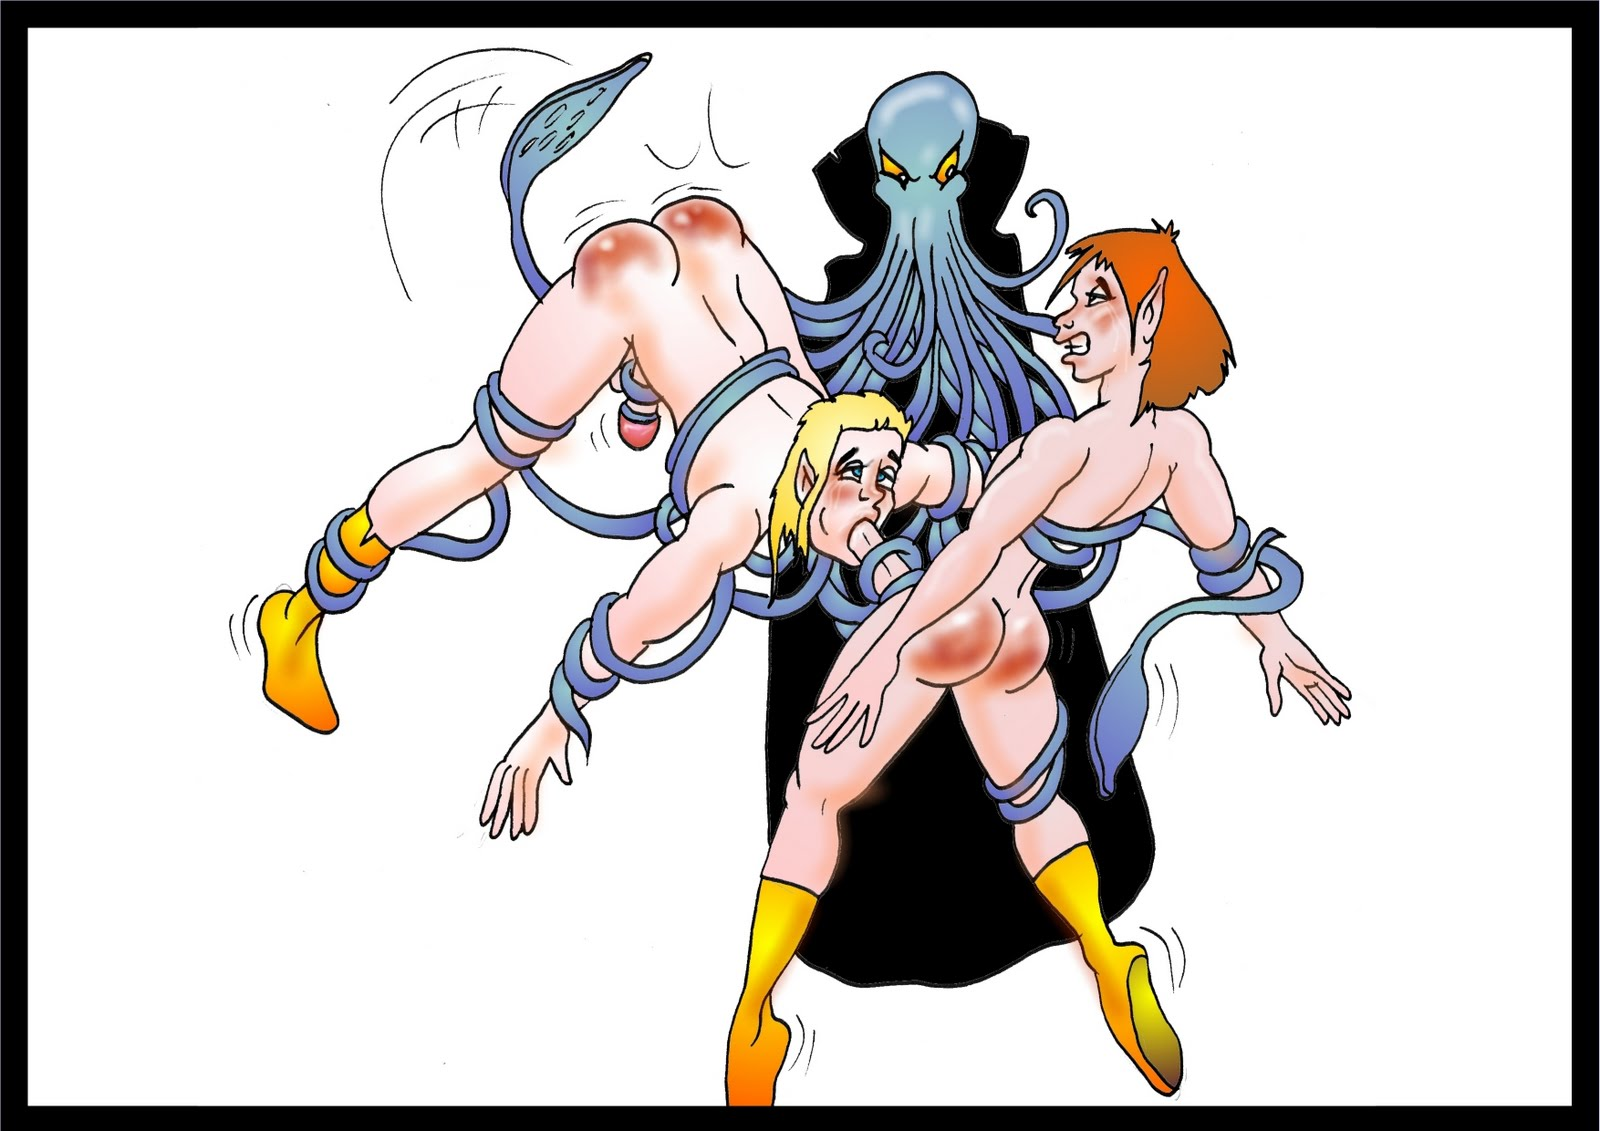 Elf spanking art erotic comics